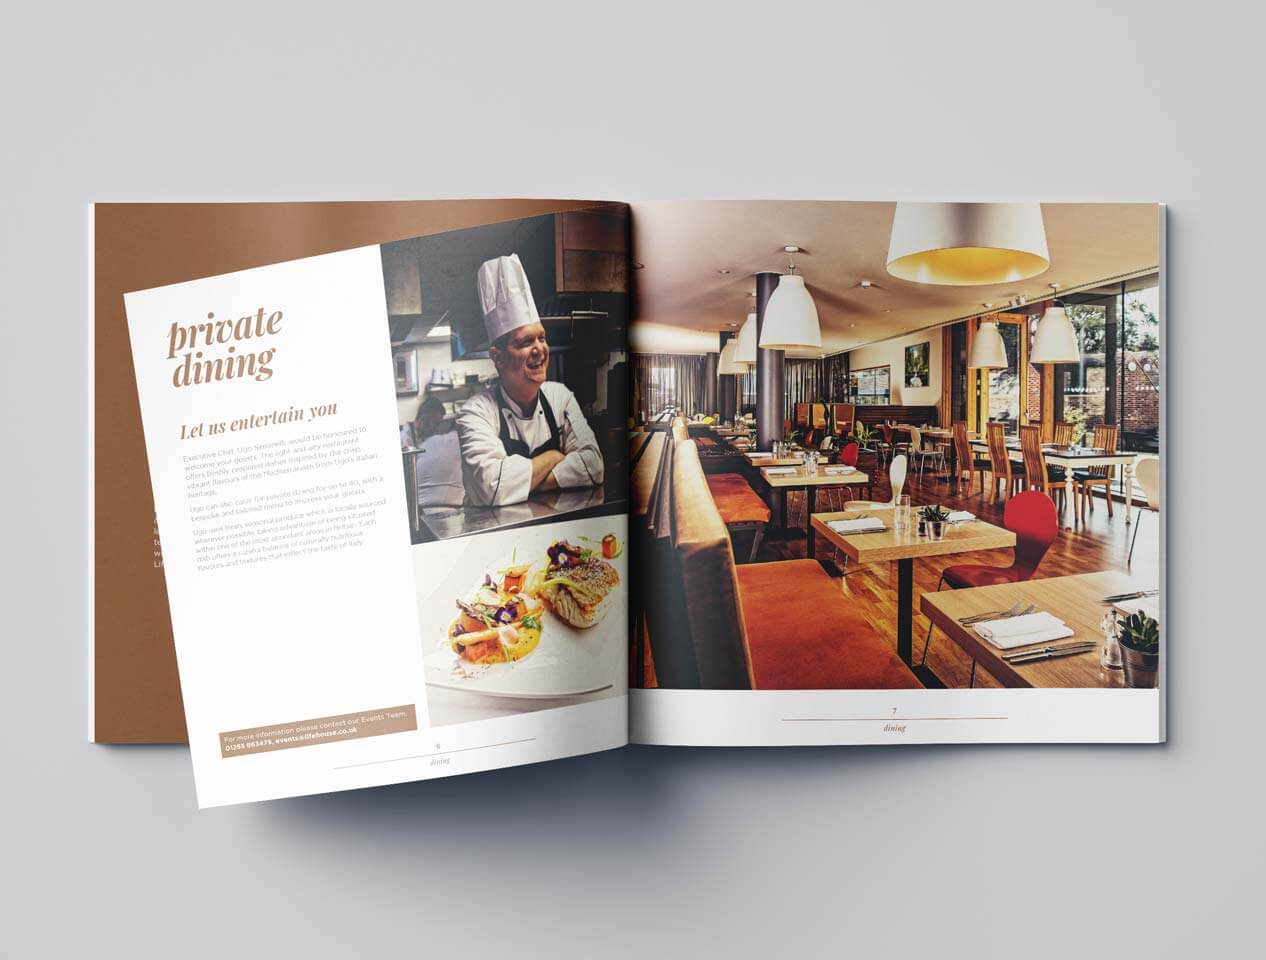 Image showing the internal pages of the Lifehouse Spa and Hotel brochure with images and text